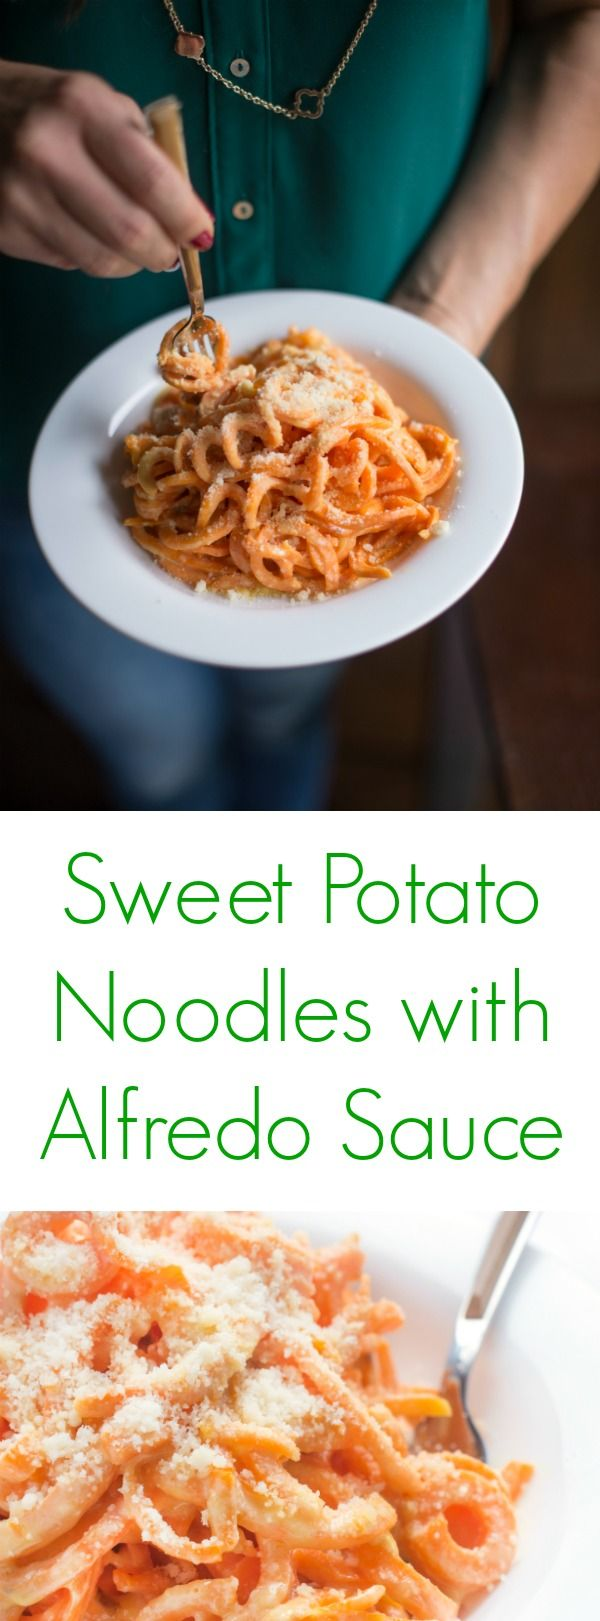 A healthy alternative to traditional fettuccini alfredo, this naturally gluten free pasta recipe is made with nutrient-rich sweet potato noodles.